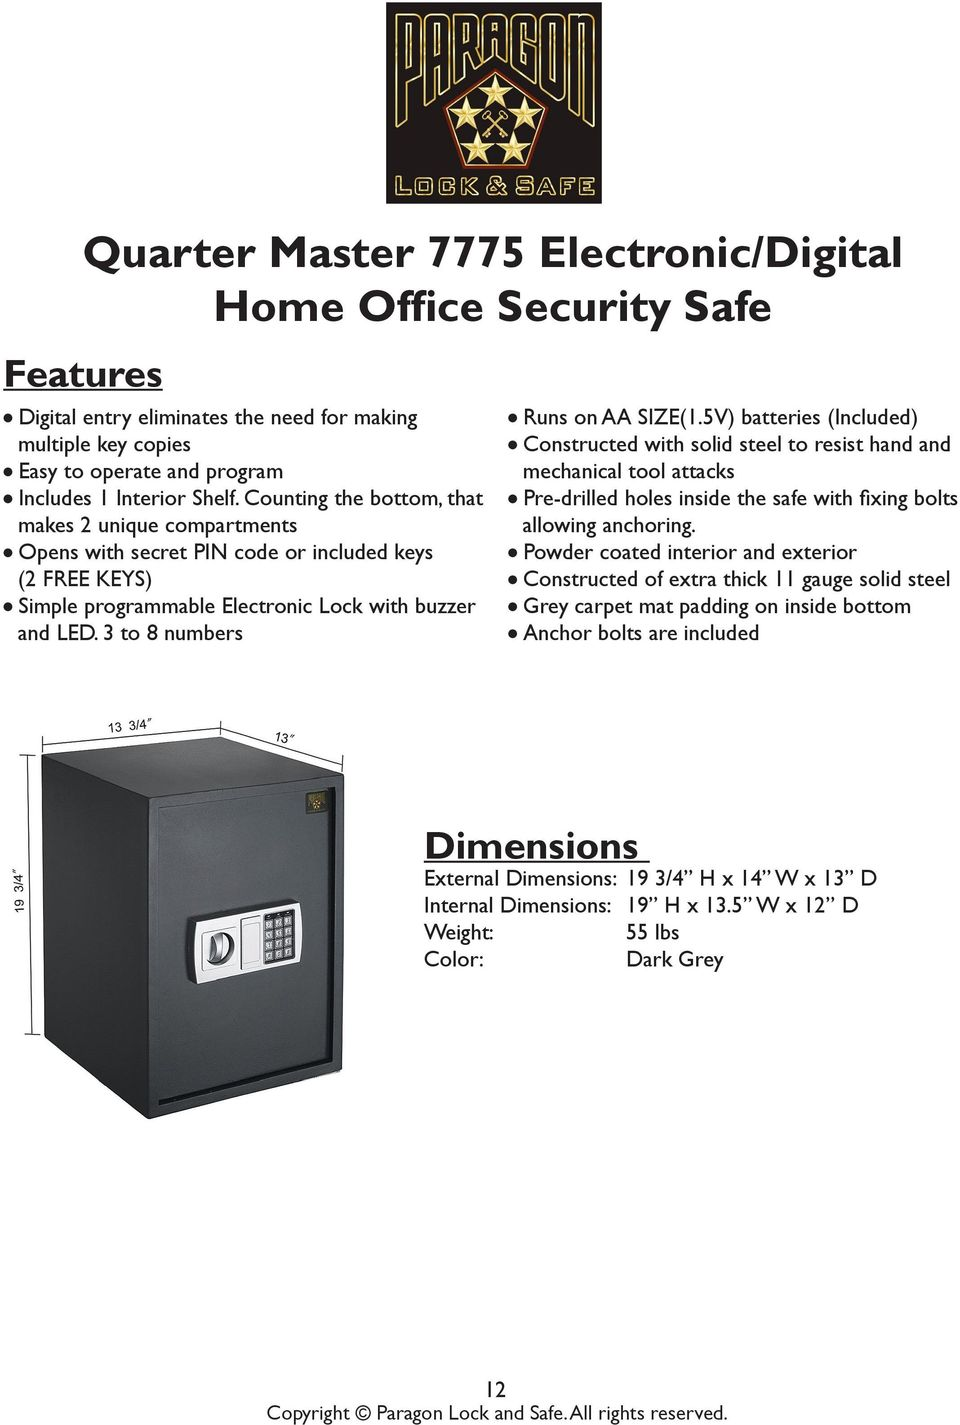 Operating Manuals For Safe Models Pdf Picture Of Quiz Show Buzzer System Using Staples Easy Button 3 To 8 Numbers L Runs On Aa Size1